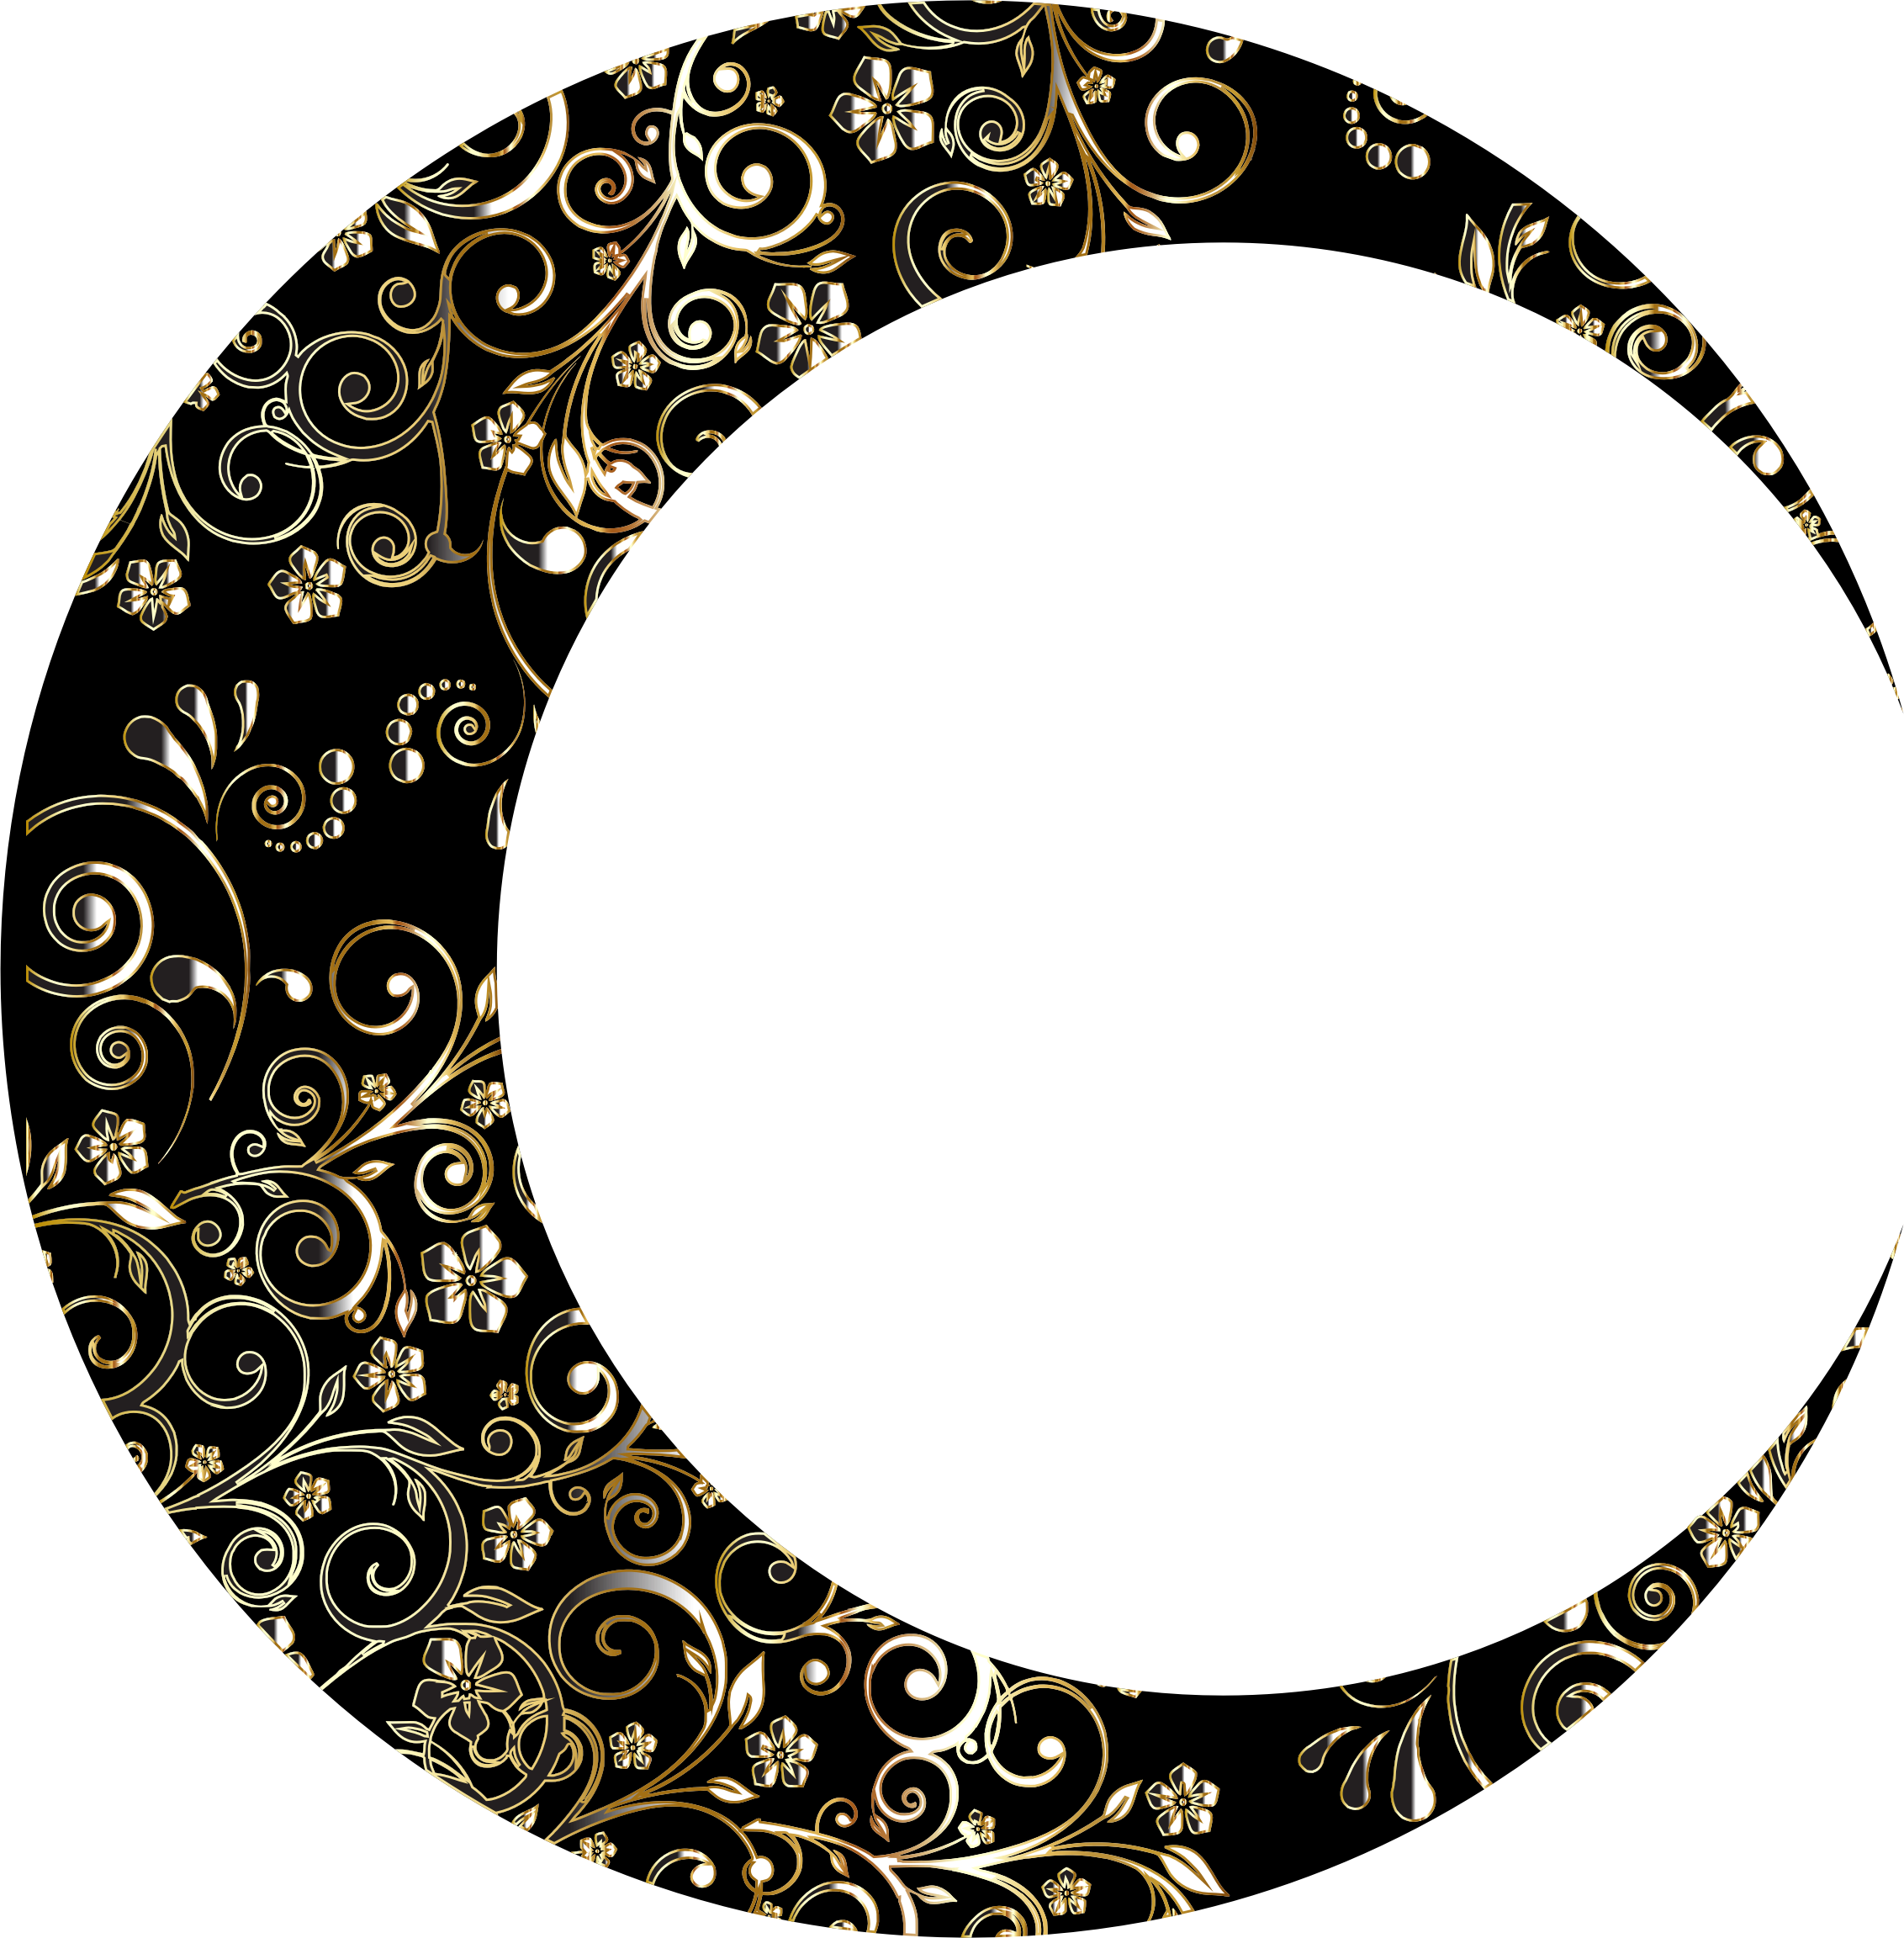 Gold Floral Crescent Moon Mark II 12 by GDJ